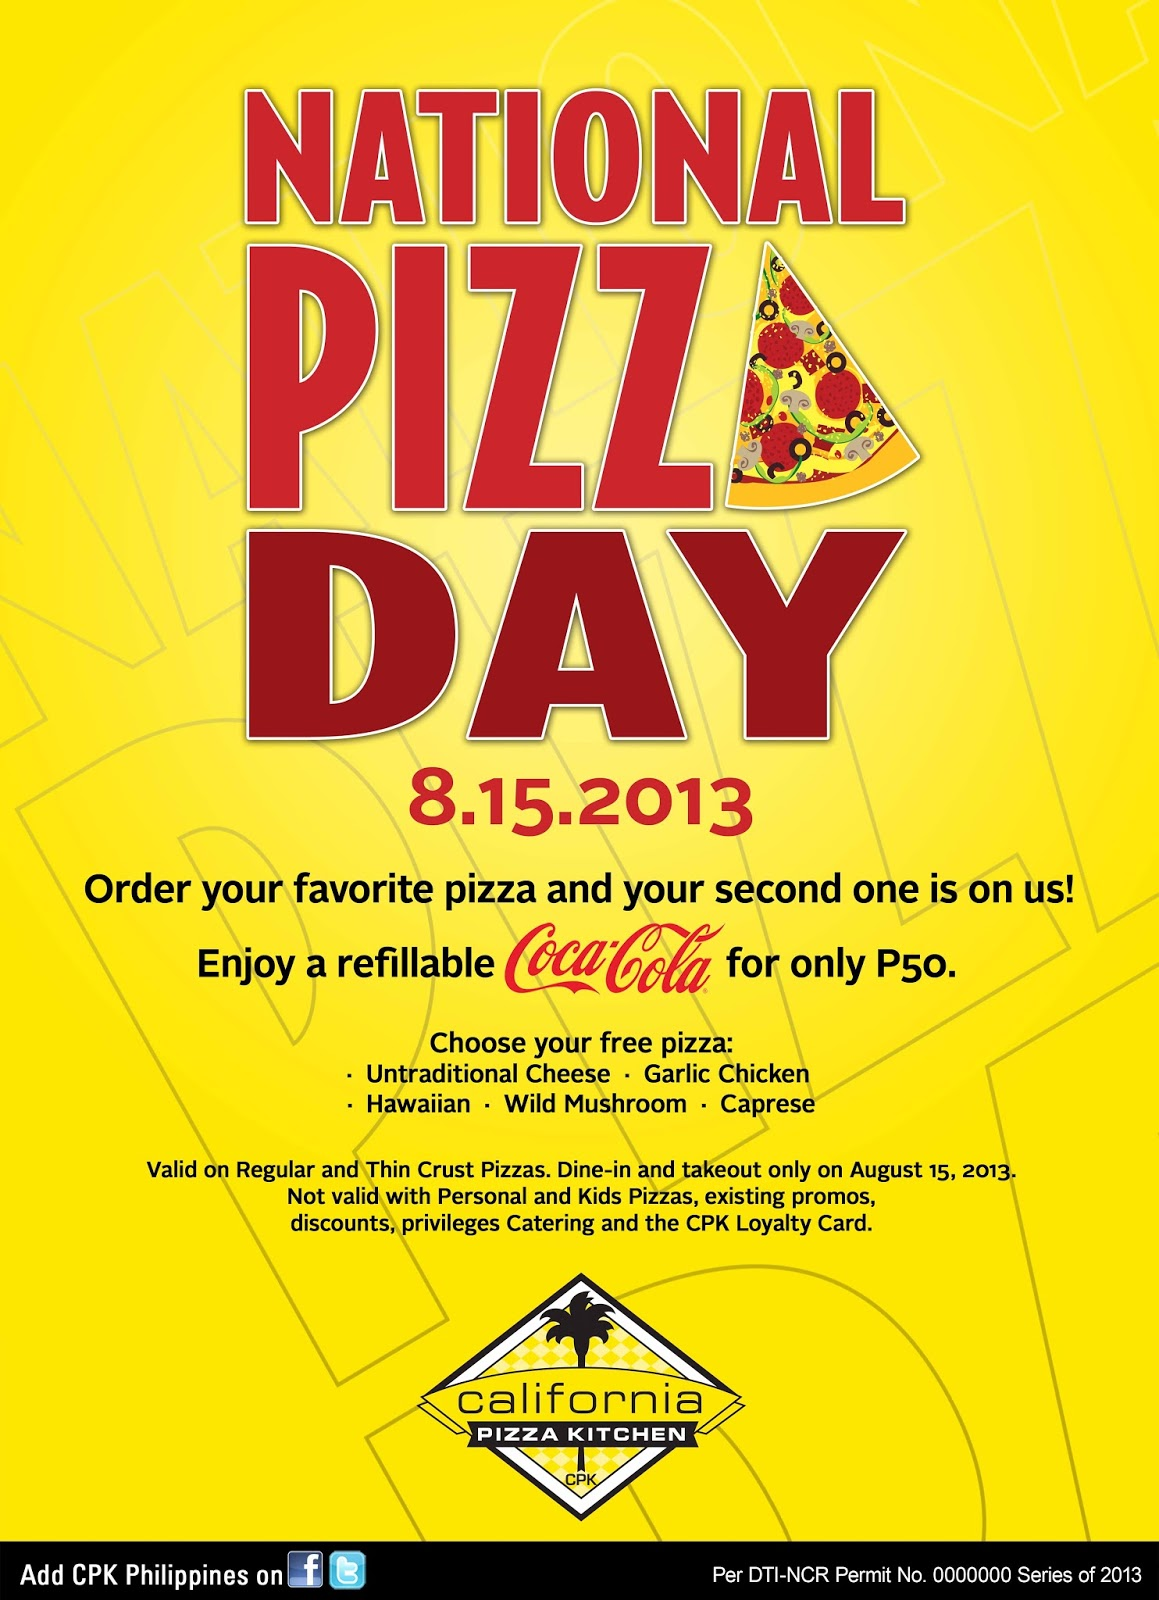 ional pizza day